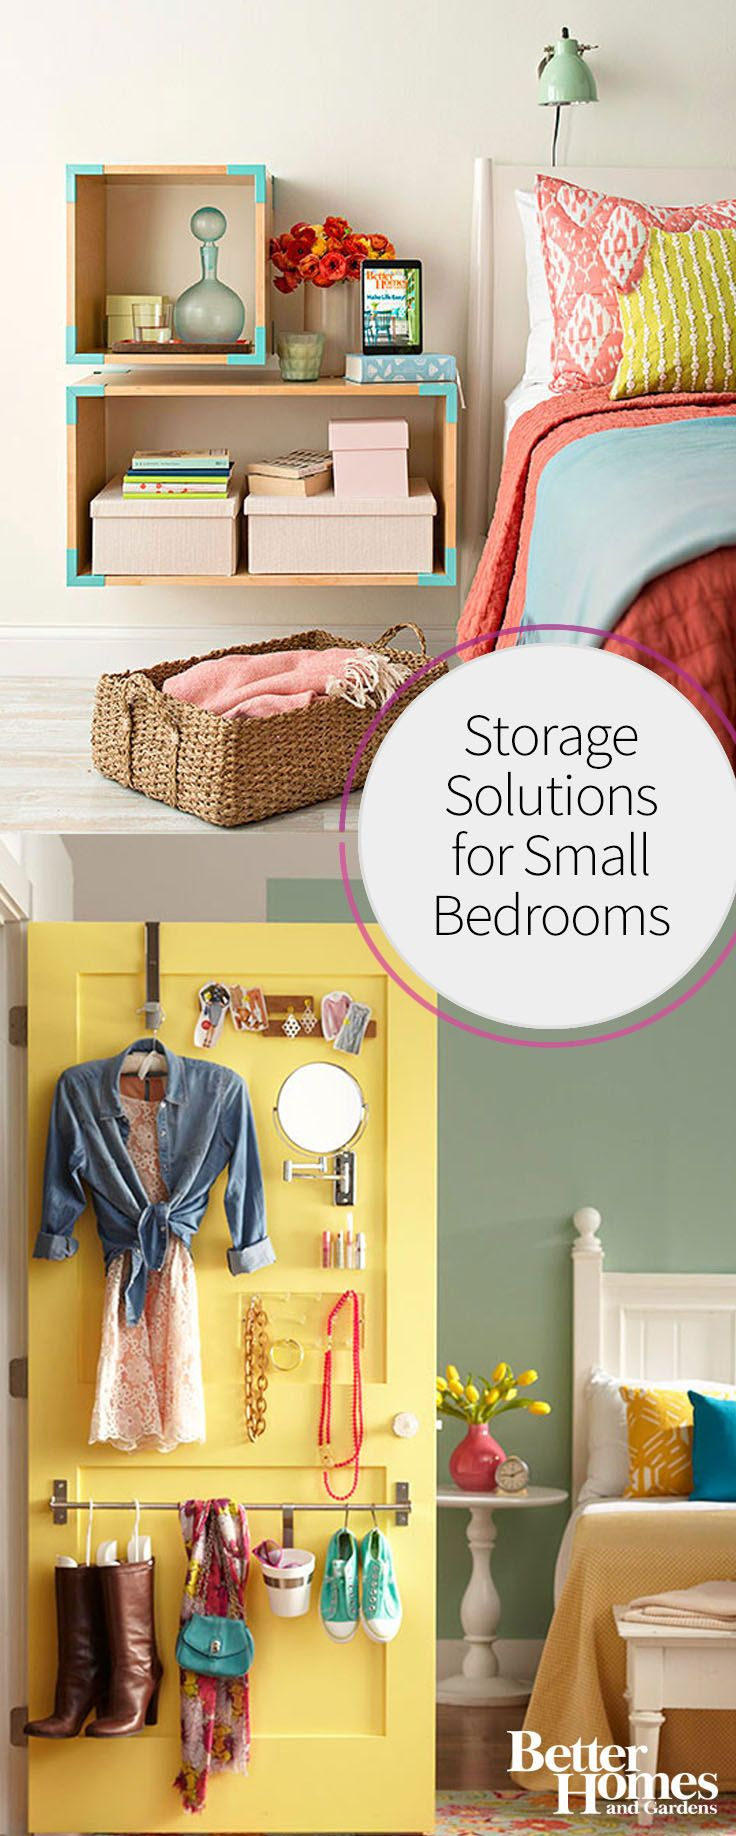 best 25 small bedroom storage ideas on pinterest 19901 | 77e518b7dc7bfa21ea812f7261cc419c decorating small spaces small bedrooms design